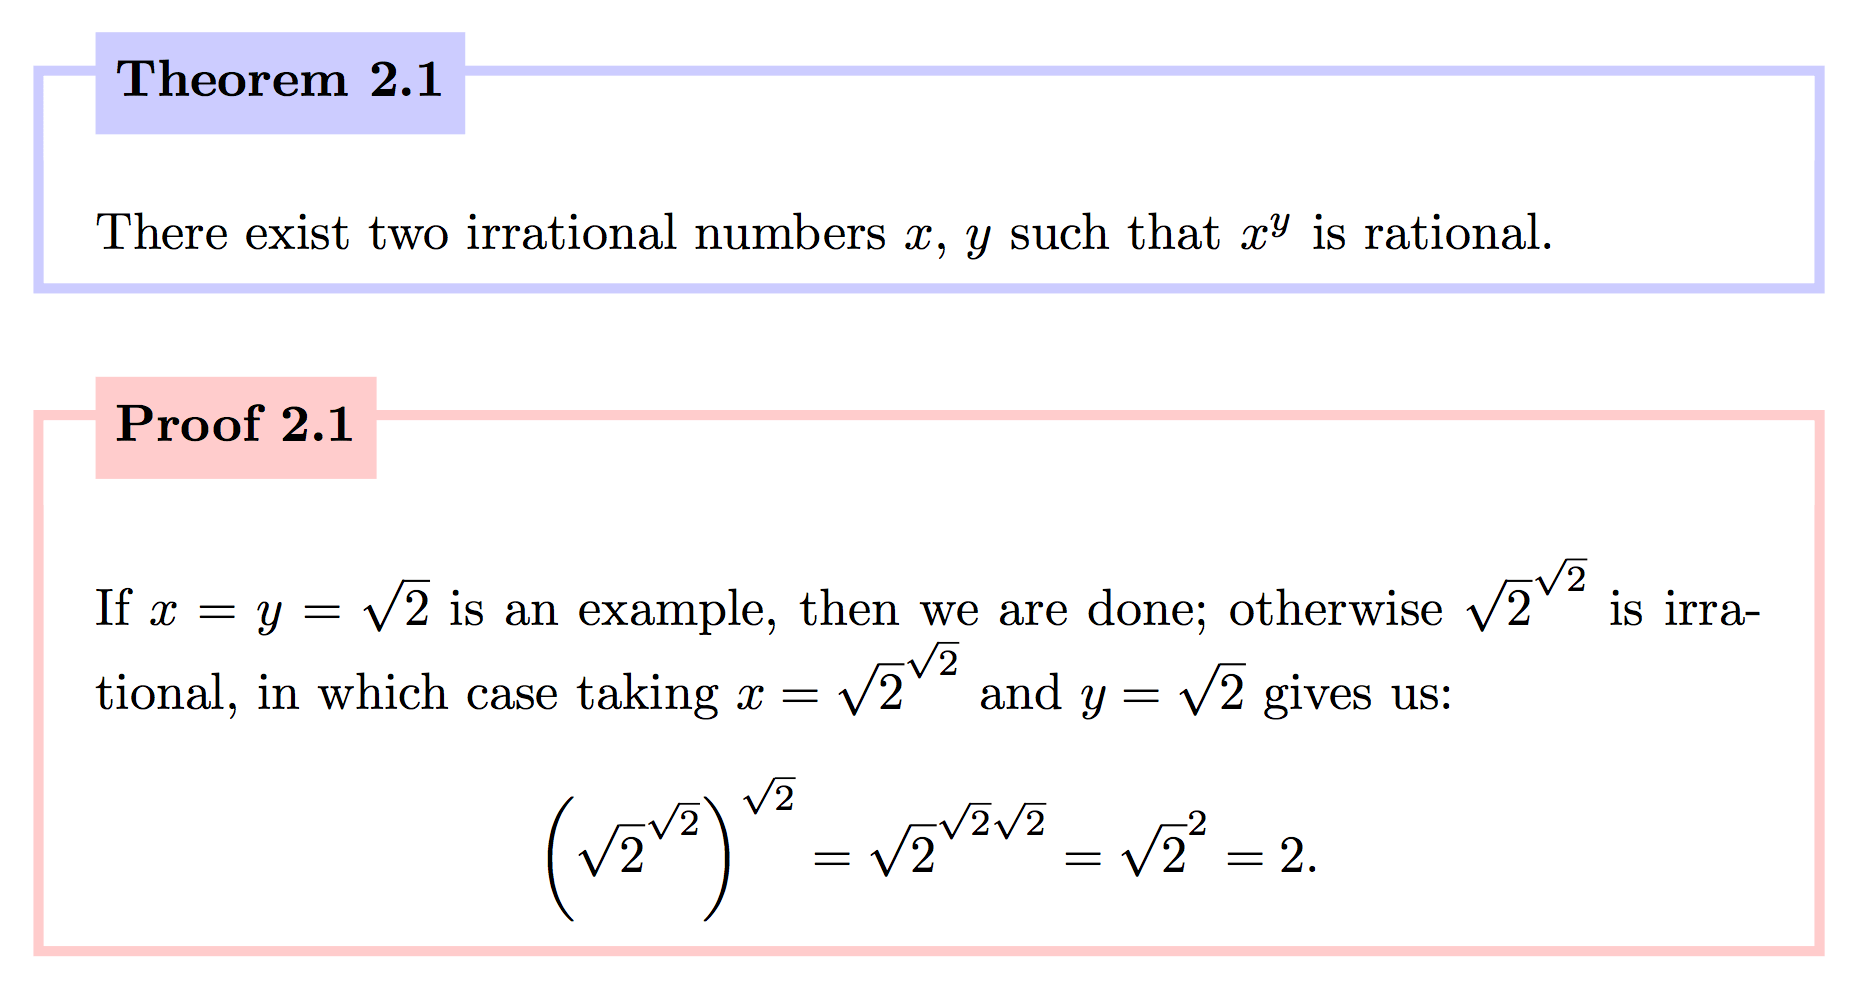 how to go to next page in latex